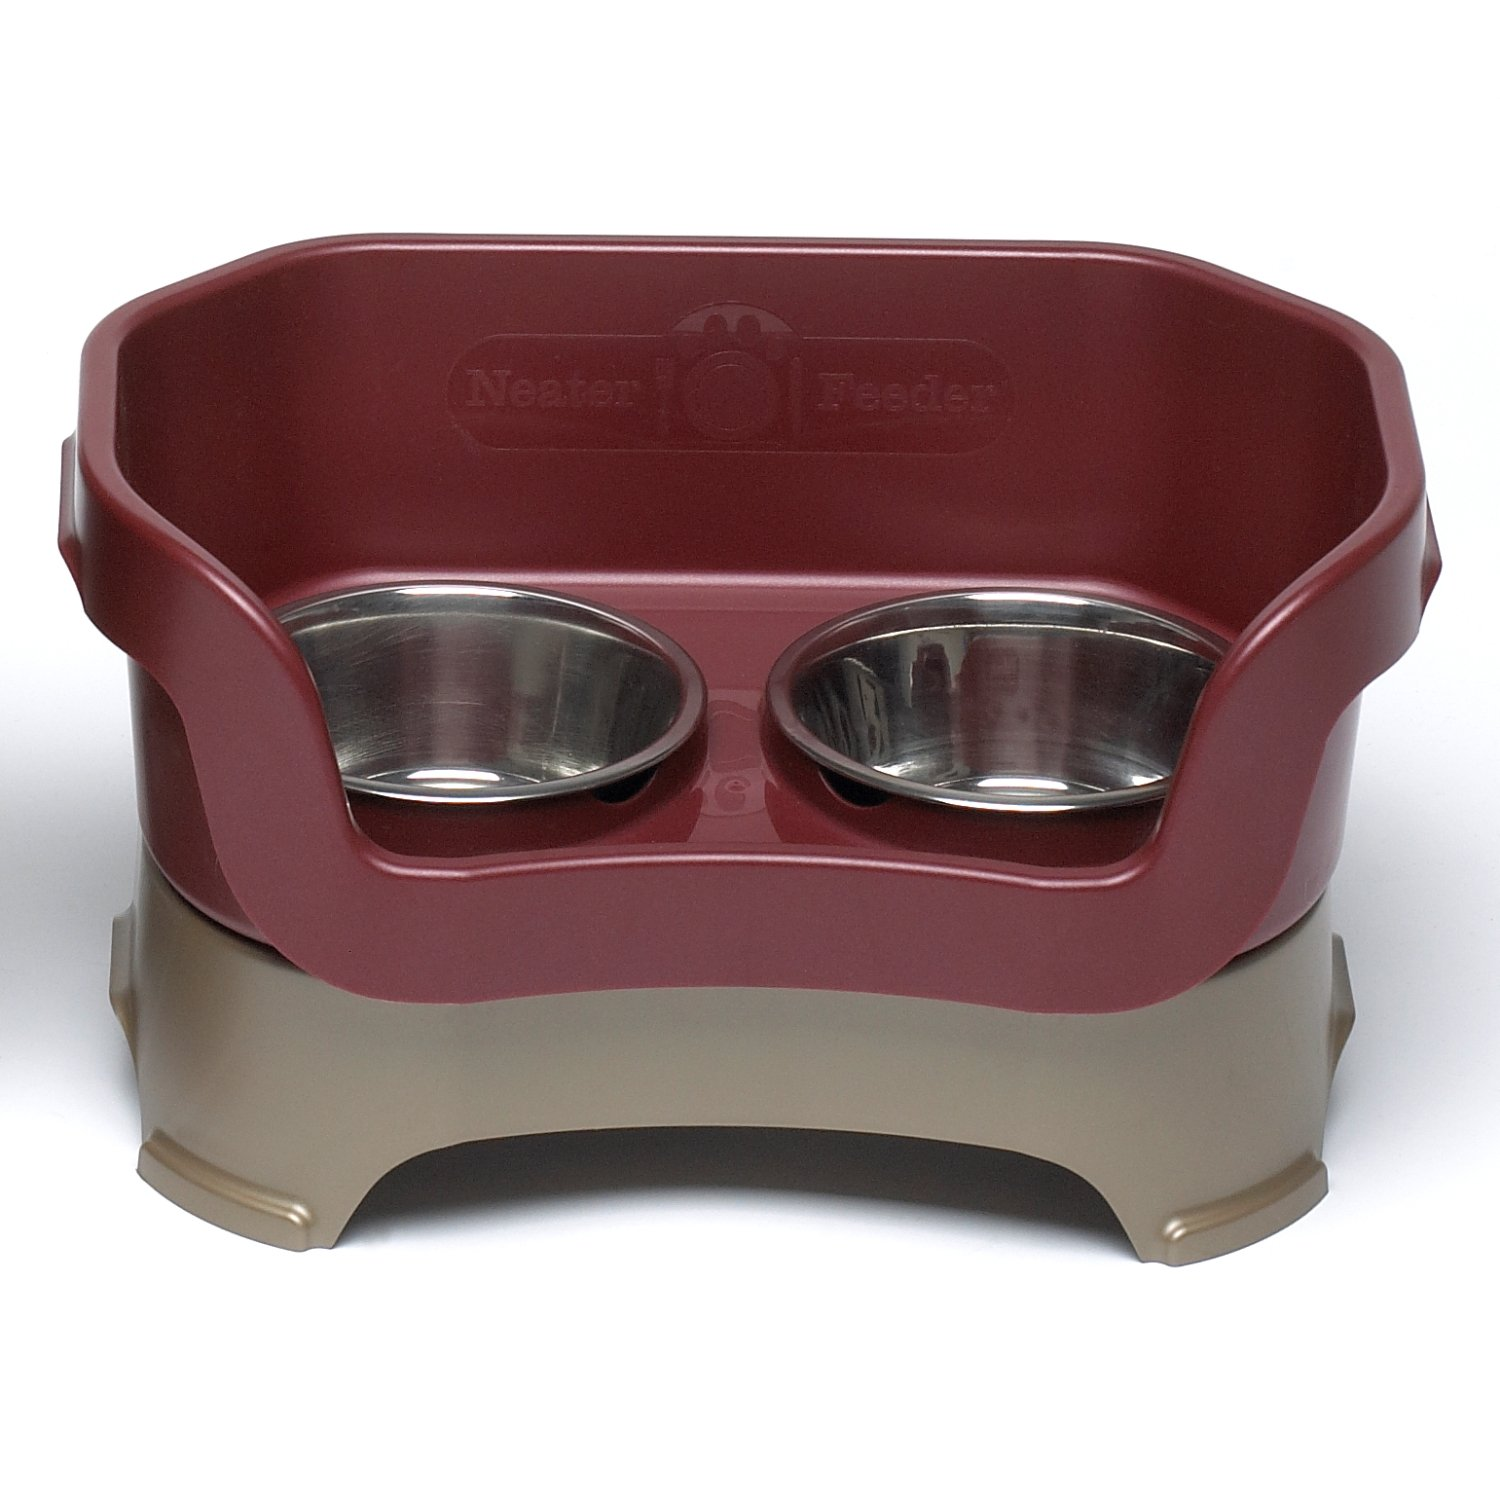 Neater Feeder Deluxe Medium Dog (Cranberry) - The Mess Proof Elevated Bowls No Slip Non Tip Double Diner Stainless Steel Food Dish with Stand